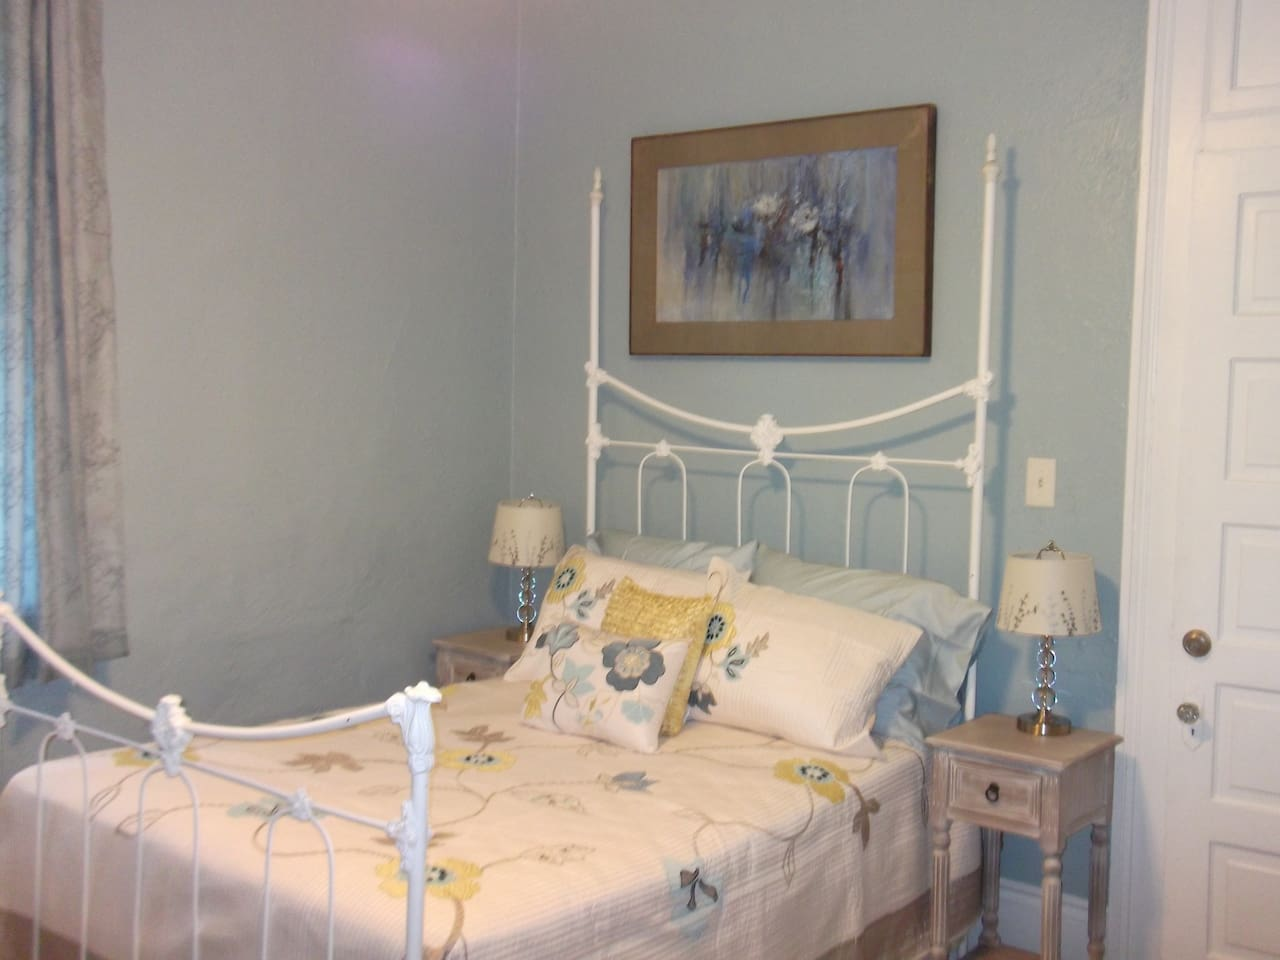 Bedroom #1 furnished classically with local New Orleans art